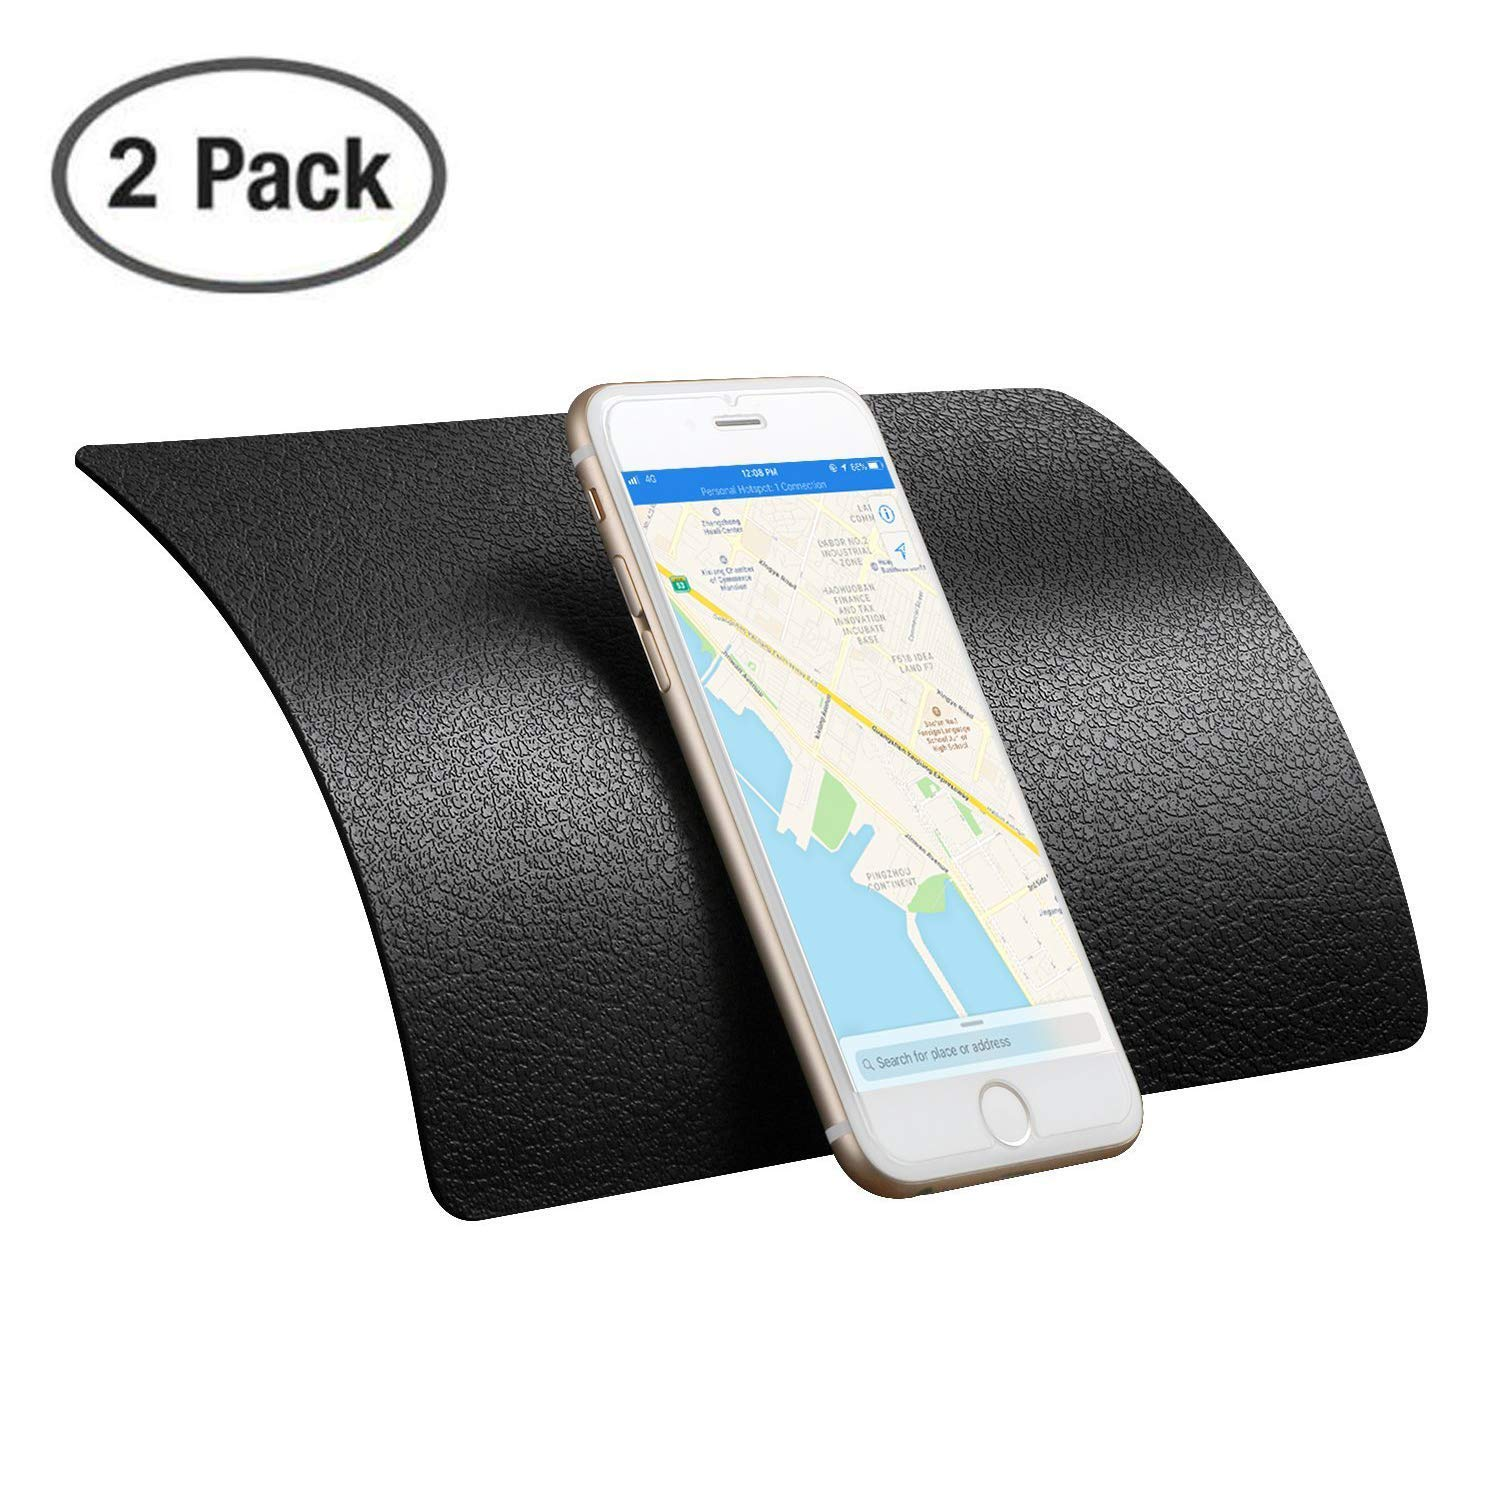 Karlor 2 Pack Sticky Anti-Slip Gel Pads for Cell Phones, Premium Non-Slip Car Dashboard Mat for Cell Phones, Sunglasses, Keys, Speakers,Coins and More-Black (Large Size 8.9 X 5.7 inch) by Karlor